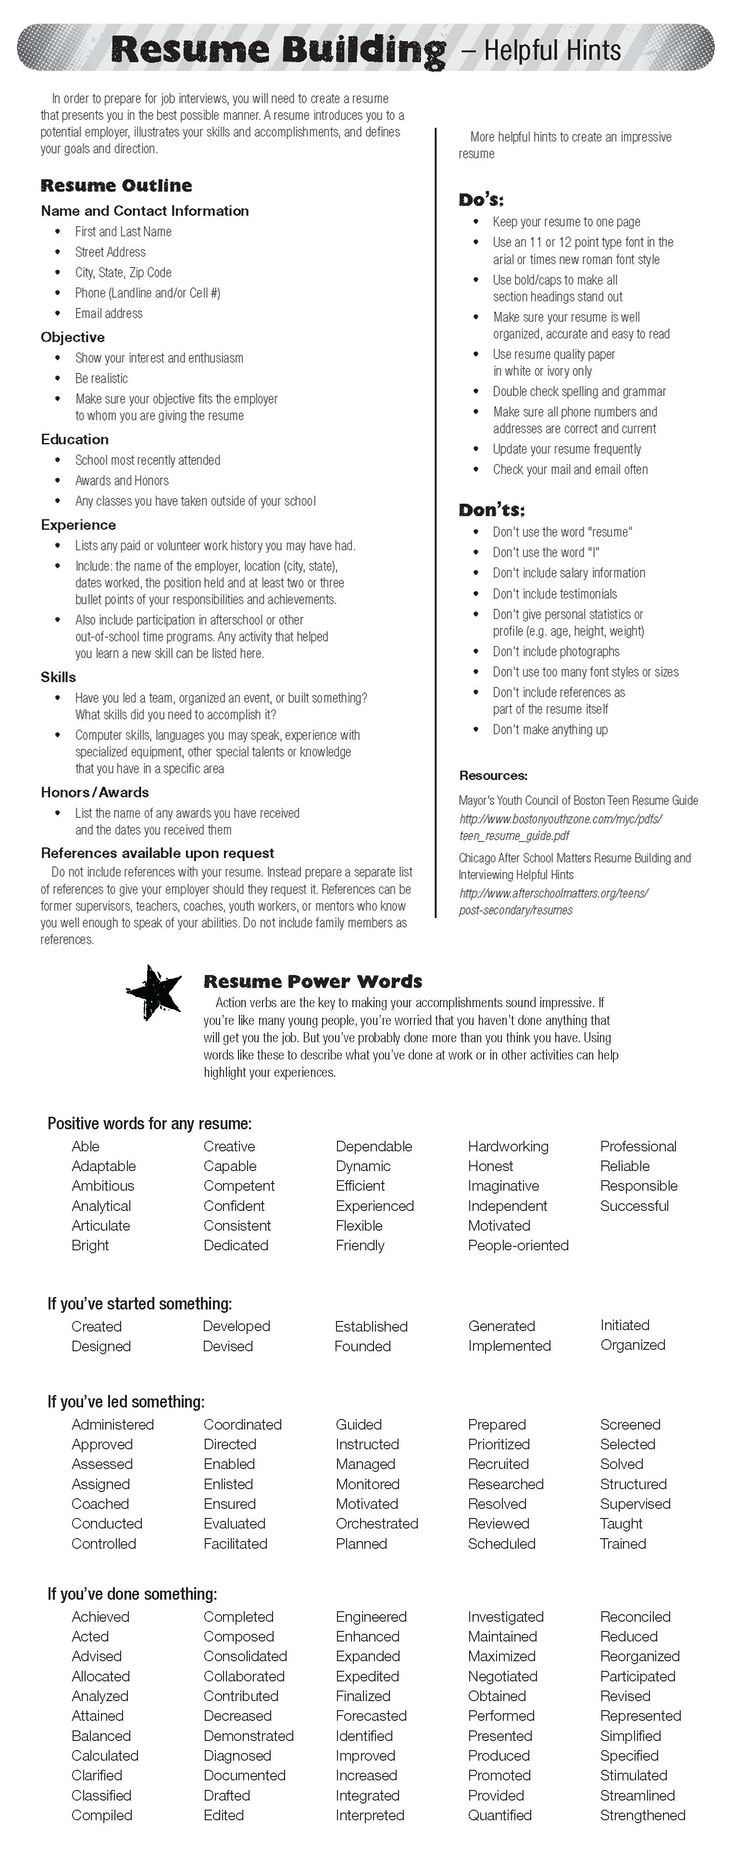 Opposenewapstandardsus  Inspiring  Ideas About Resume On Pinterest  Cv Format Resume Cv And  With Engaging  Ideas About Resume On Pinterest  Cv Format Resume Cv And Resume Templates With Archaic Bill Gates Resume Also French Resume In Addition Resume High School Graduate And Resume Expected Graduation Date As Well As Executive Assistant Resume Skills Additionally Education On Resume Examples From Pinterestcom With Opposenewapstandardsus  Engaging  Ideas About Resume On Pinterest  Cv Format Resume Cv And  With Archaic  Ideas About Resume On Pinterest  Cv Format Resume Cv And Resume Templates And Inspiring Bill Gates Resume Also French Resume In Addition Resume High School Graduate From Pinterestcom